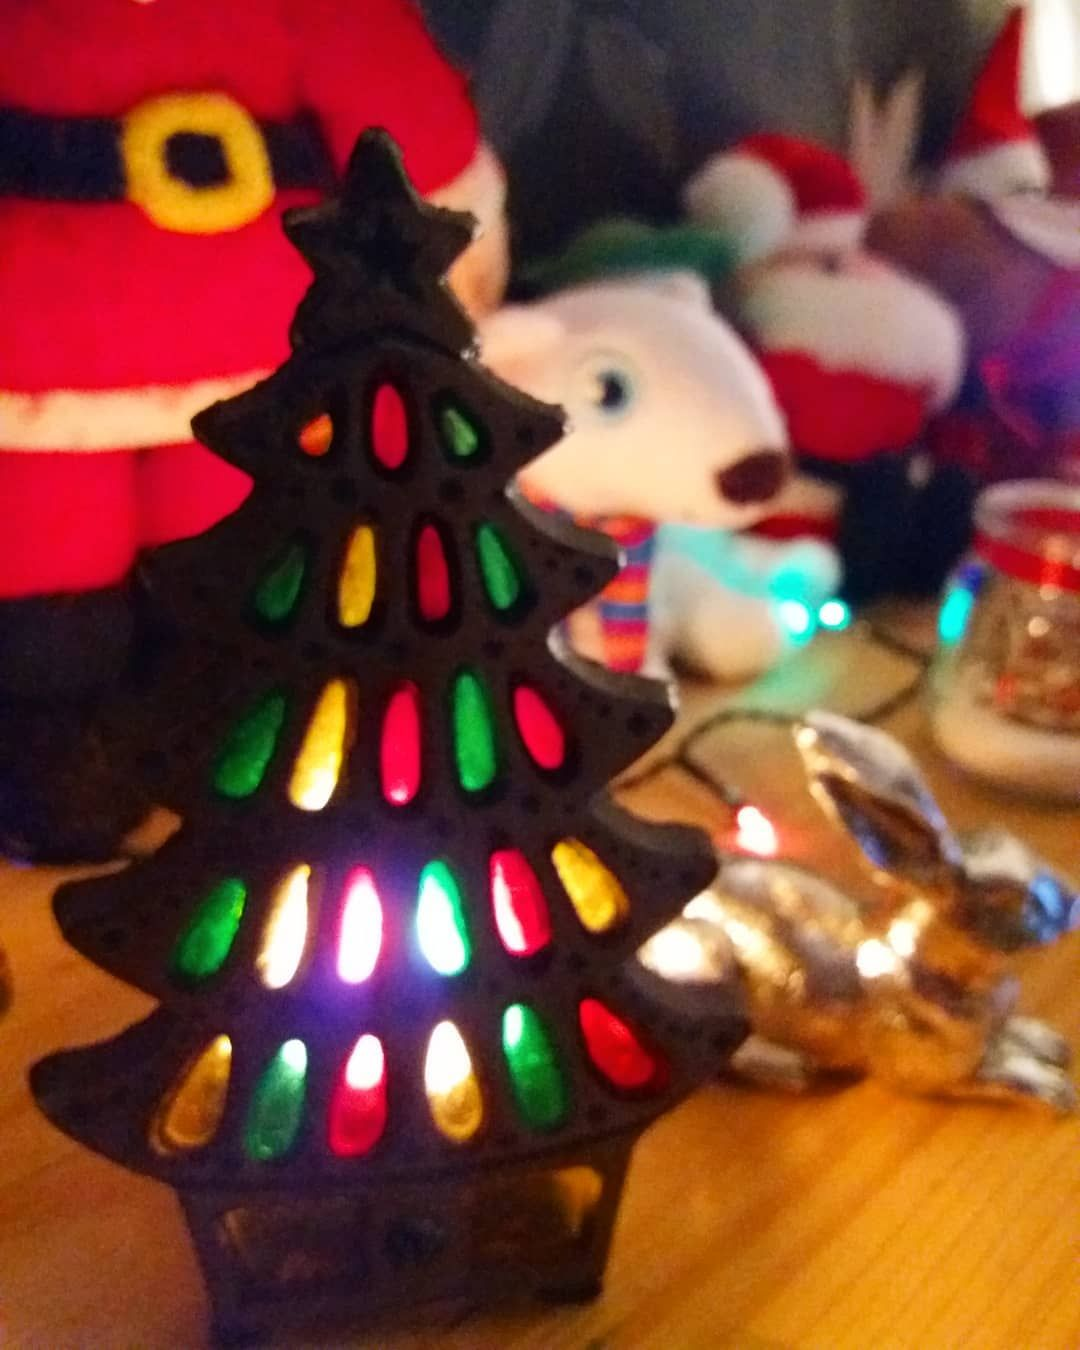 Found this Xmas tree candle holder in an antique shop in Louth. What a lovely fi... #christmasdecor #christmasdecorations #xmasdecor #xmasdecorations